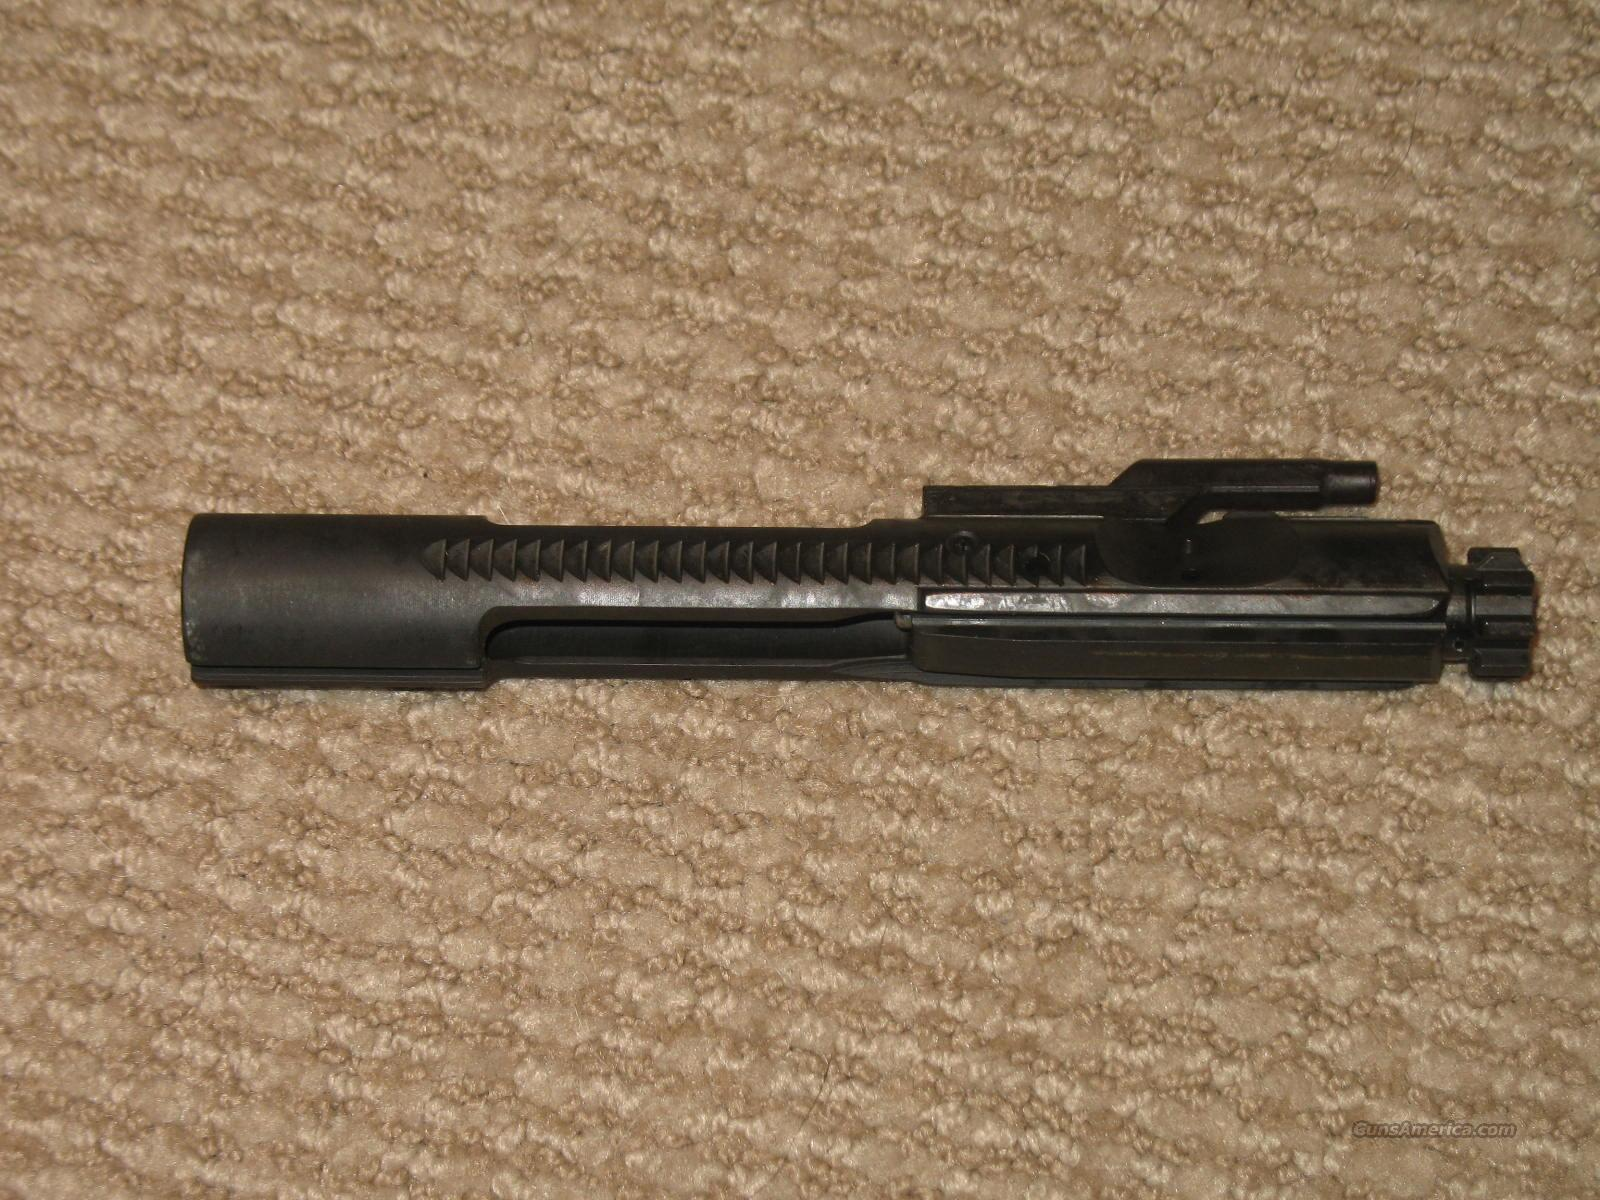 LMT(Lewis Machine Tool) Complete M-16 Bolt Carrier Group